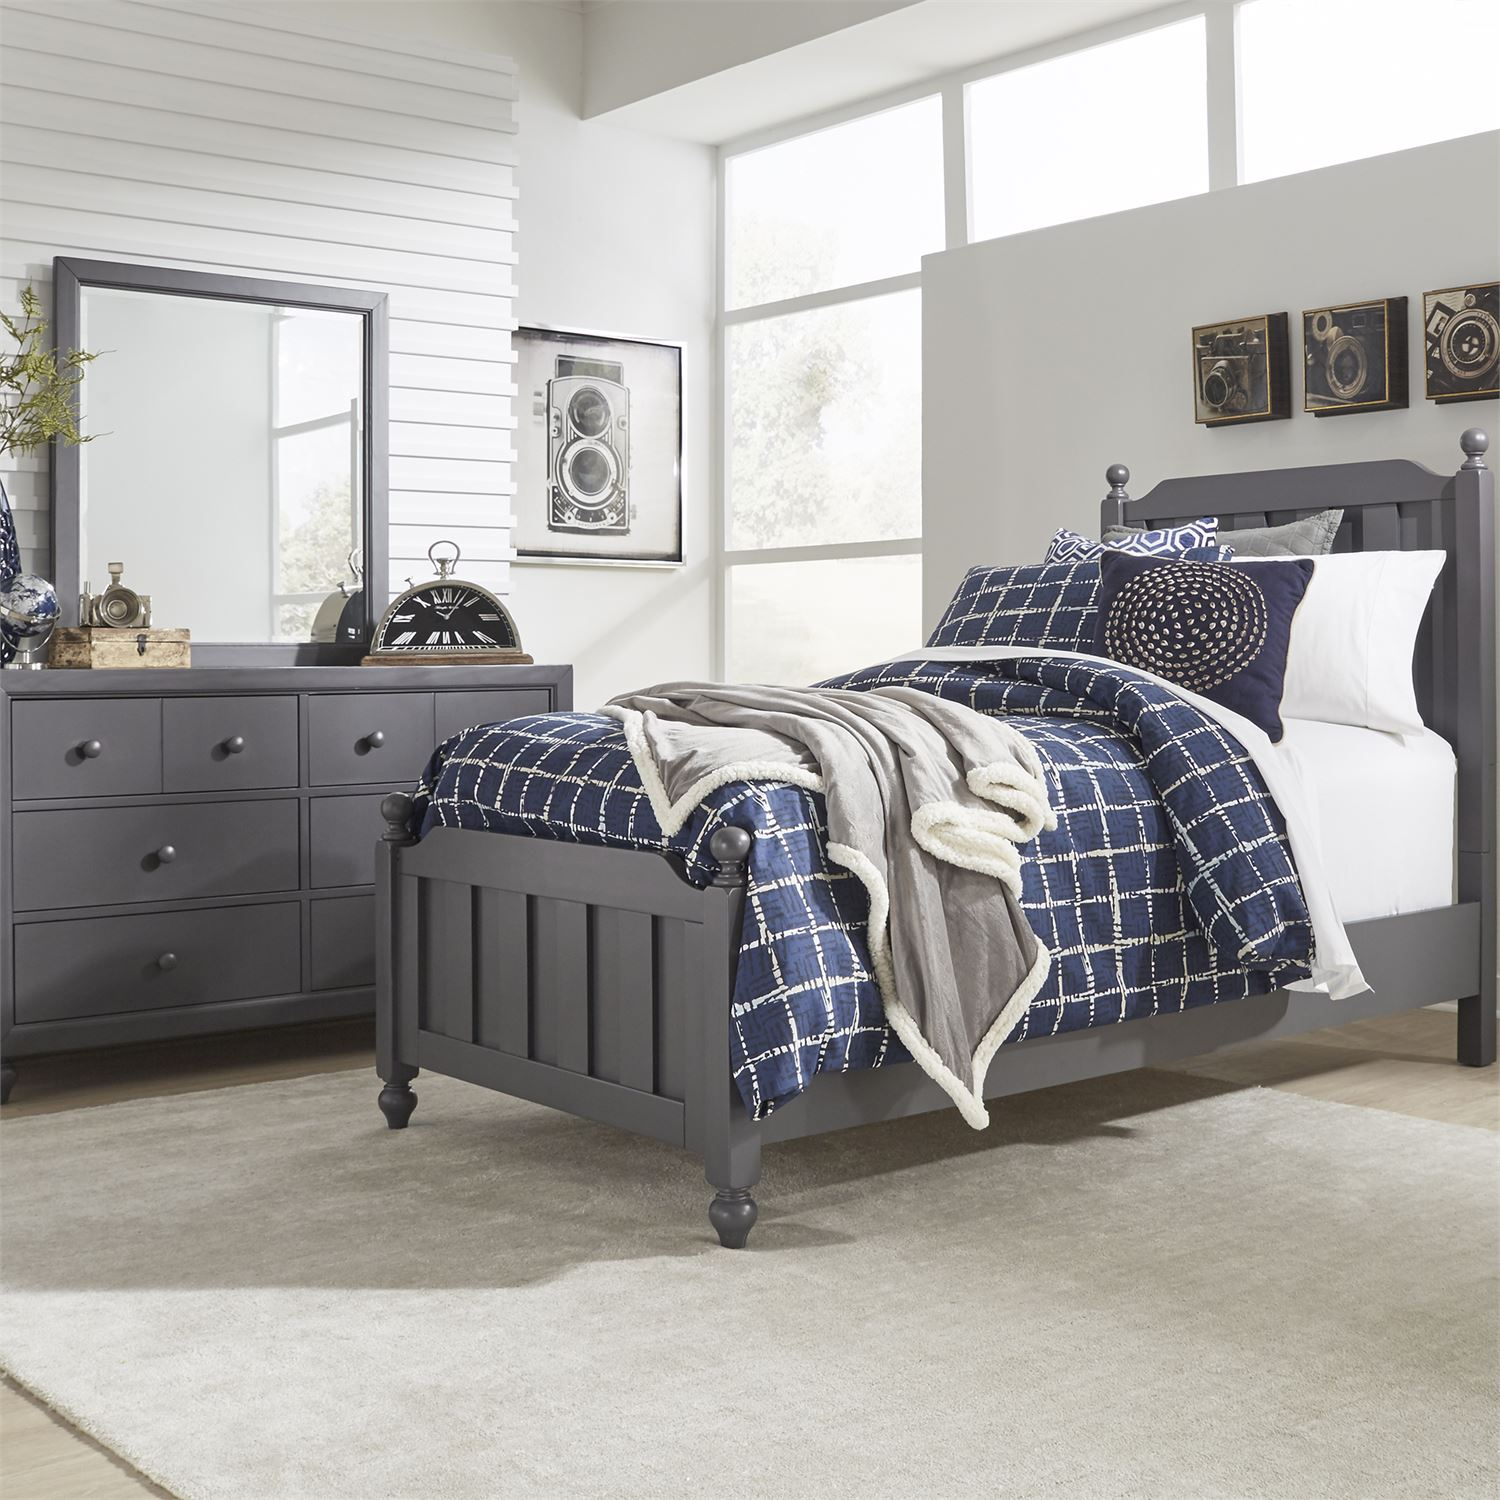 Cottage View Kids Bedroom Collection For Sale In Long Island,Room Clothes Organizer Ideas